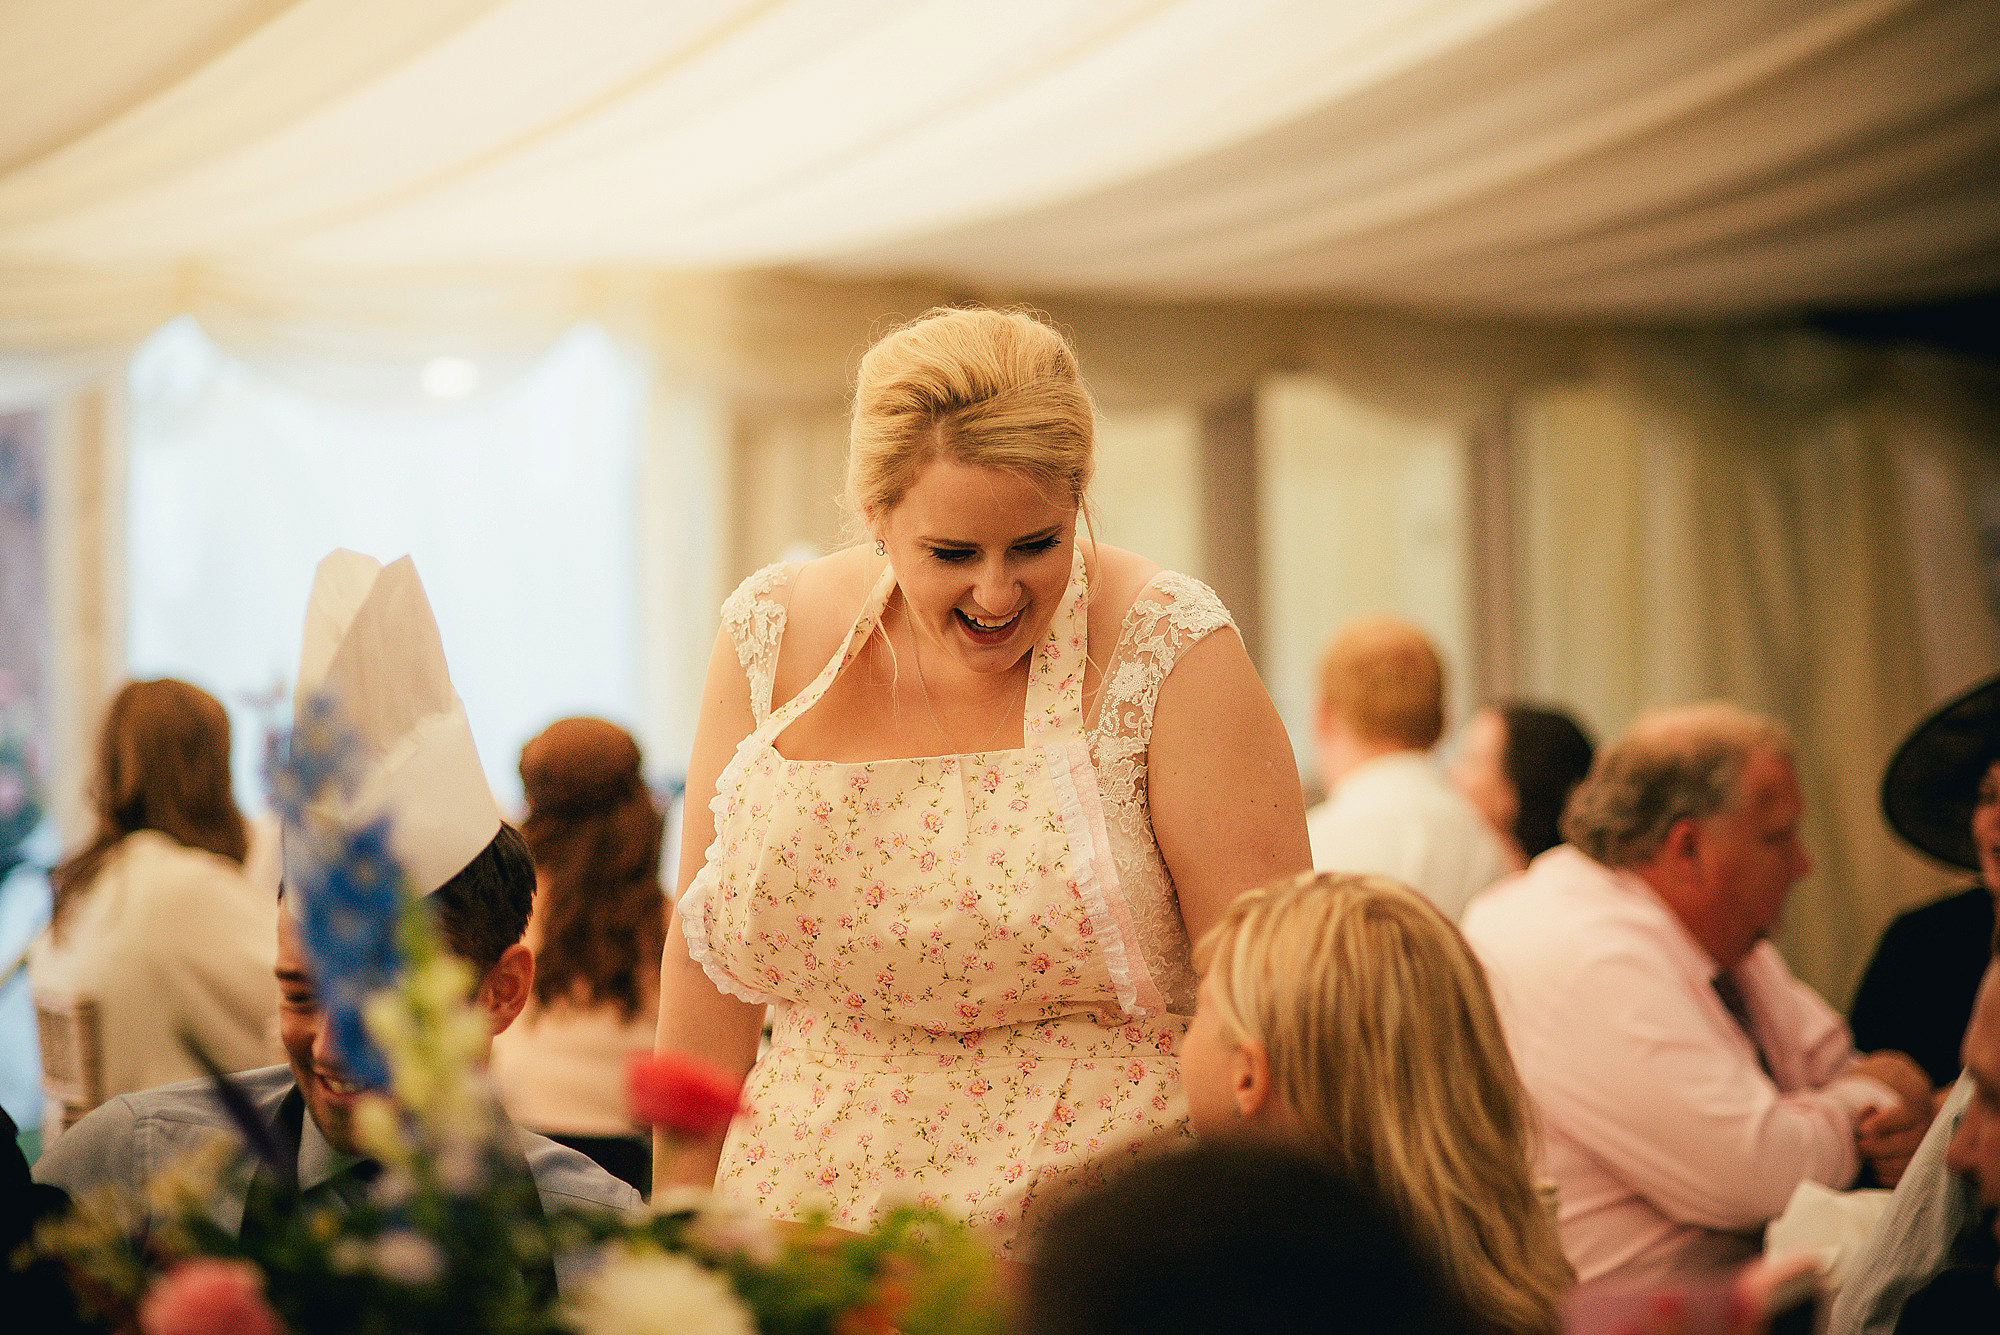 Flanesford Priory by Hereford Wedding Photographer